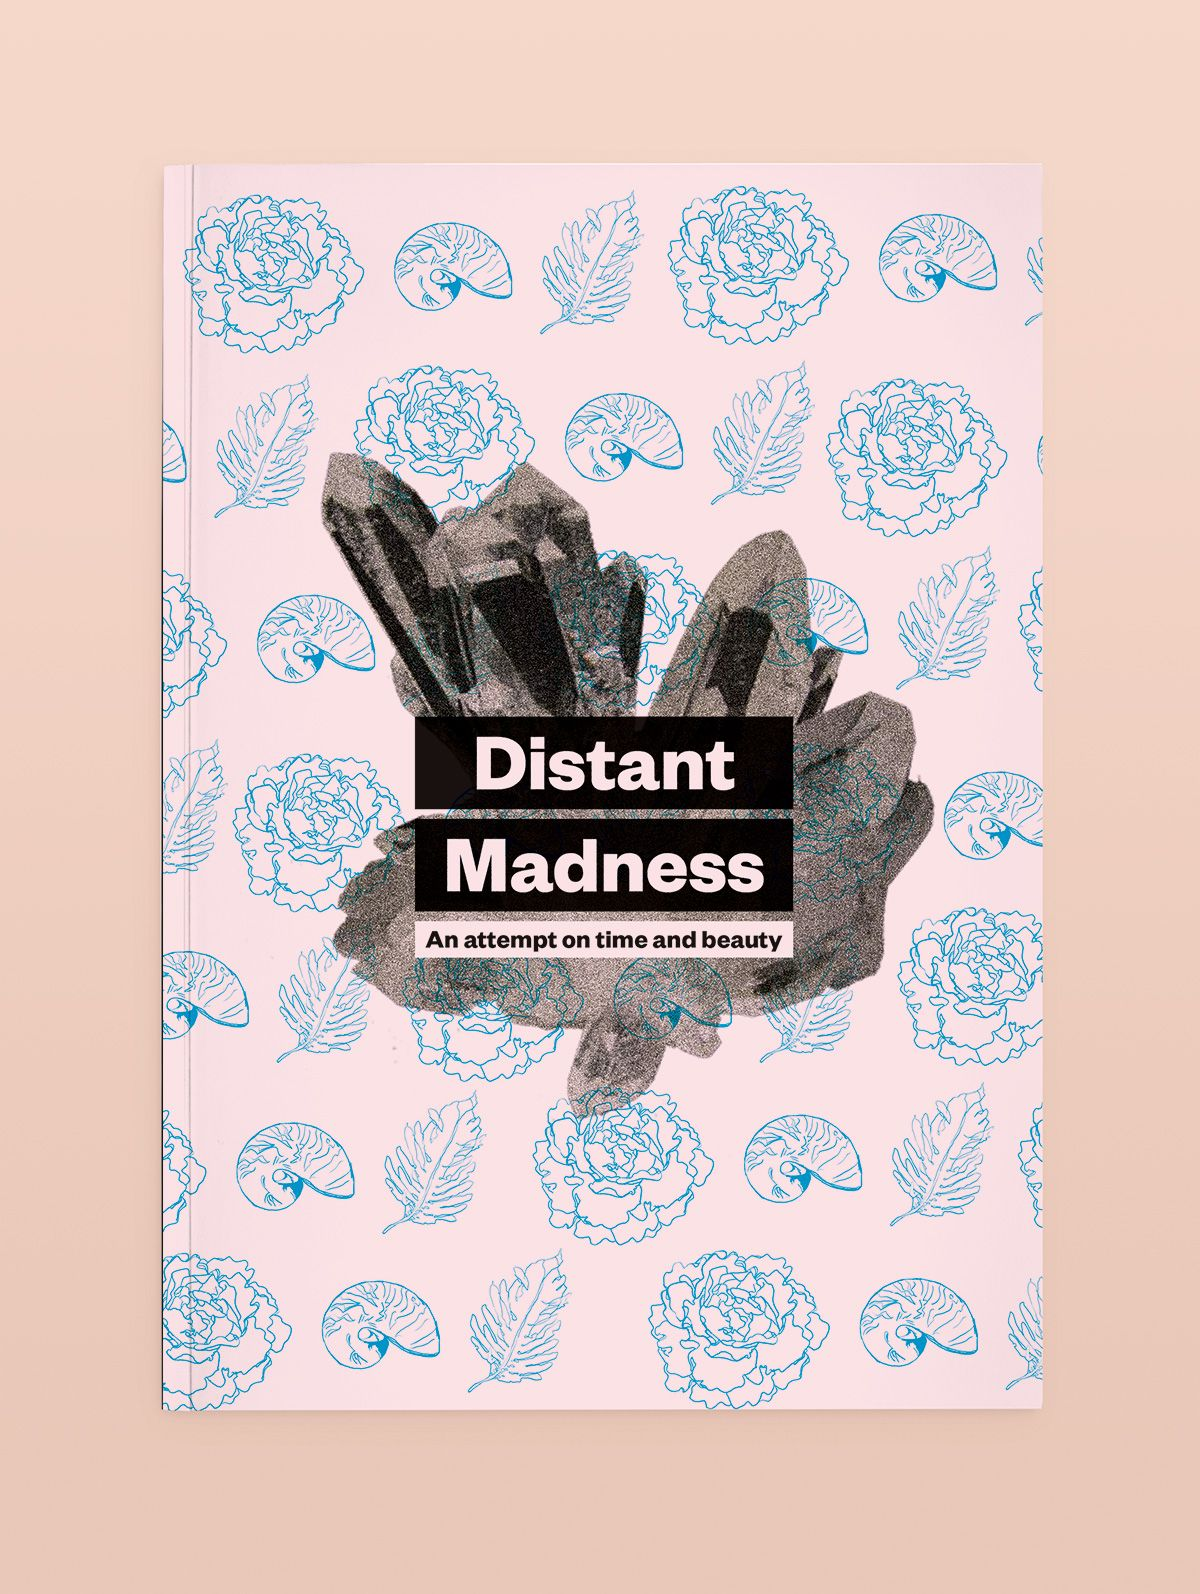 Distant Madness - Editorial Design - Cercle Studio